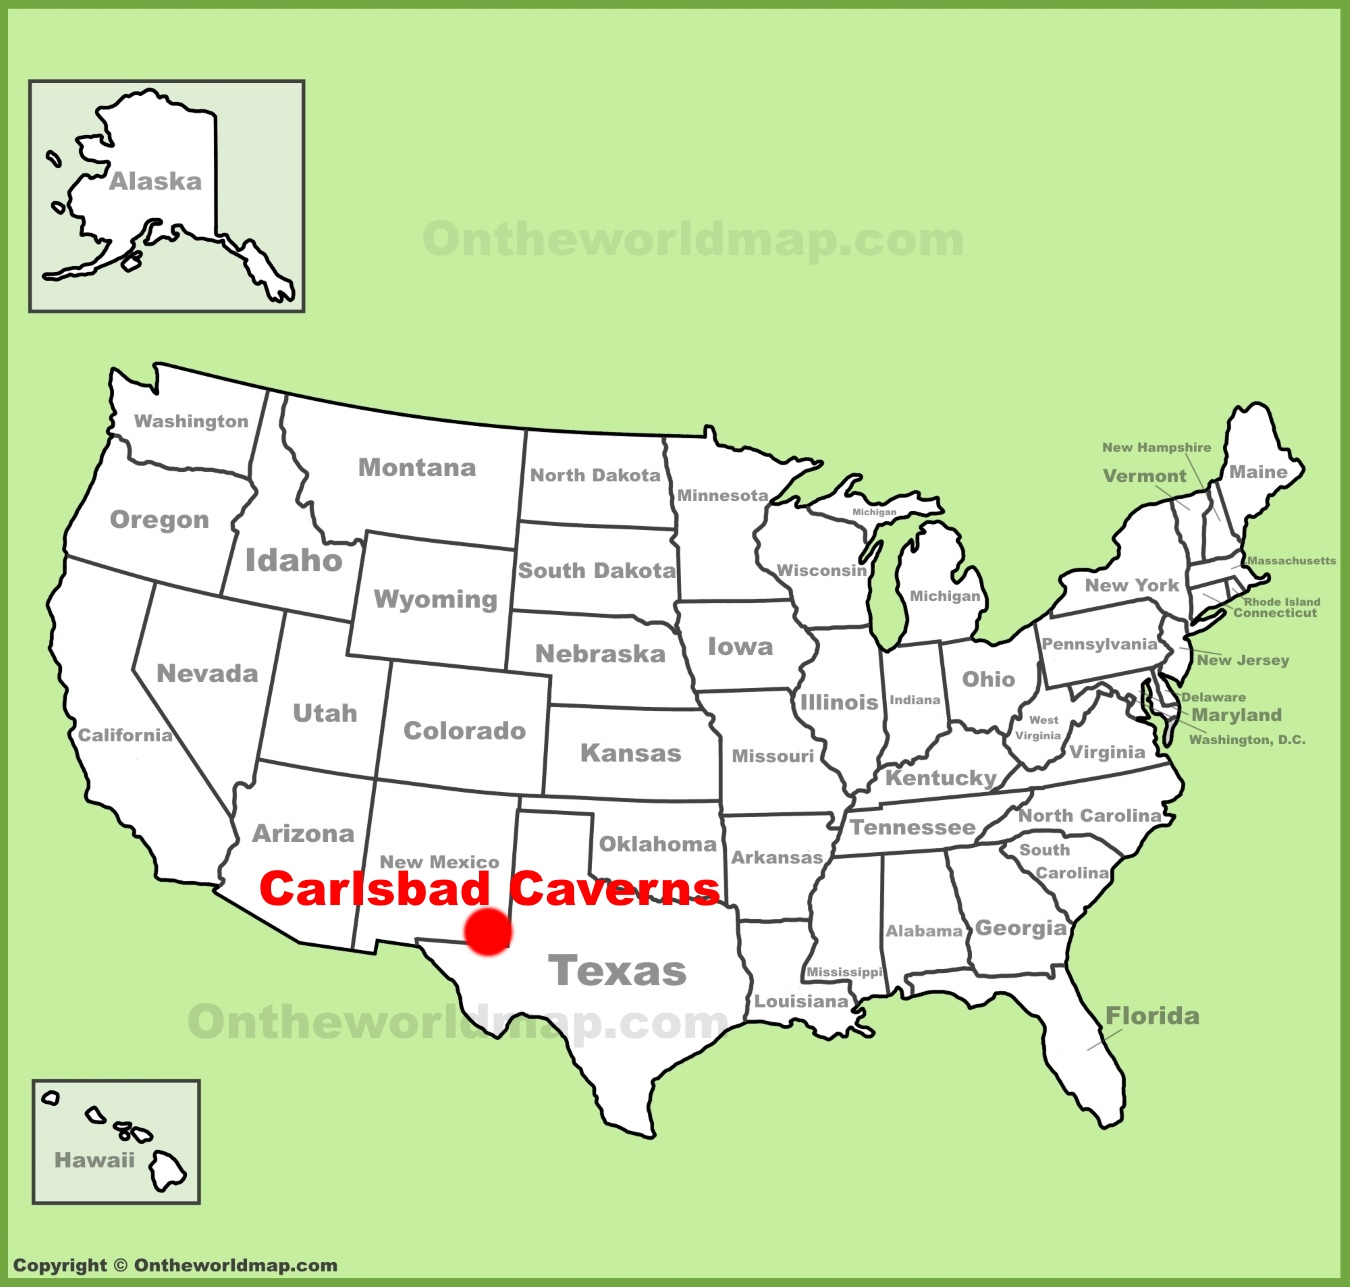 Carlsbad Caverns location on the US Map